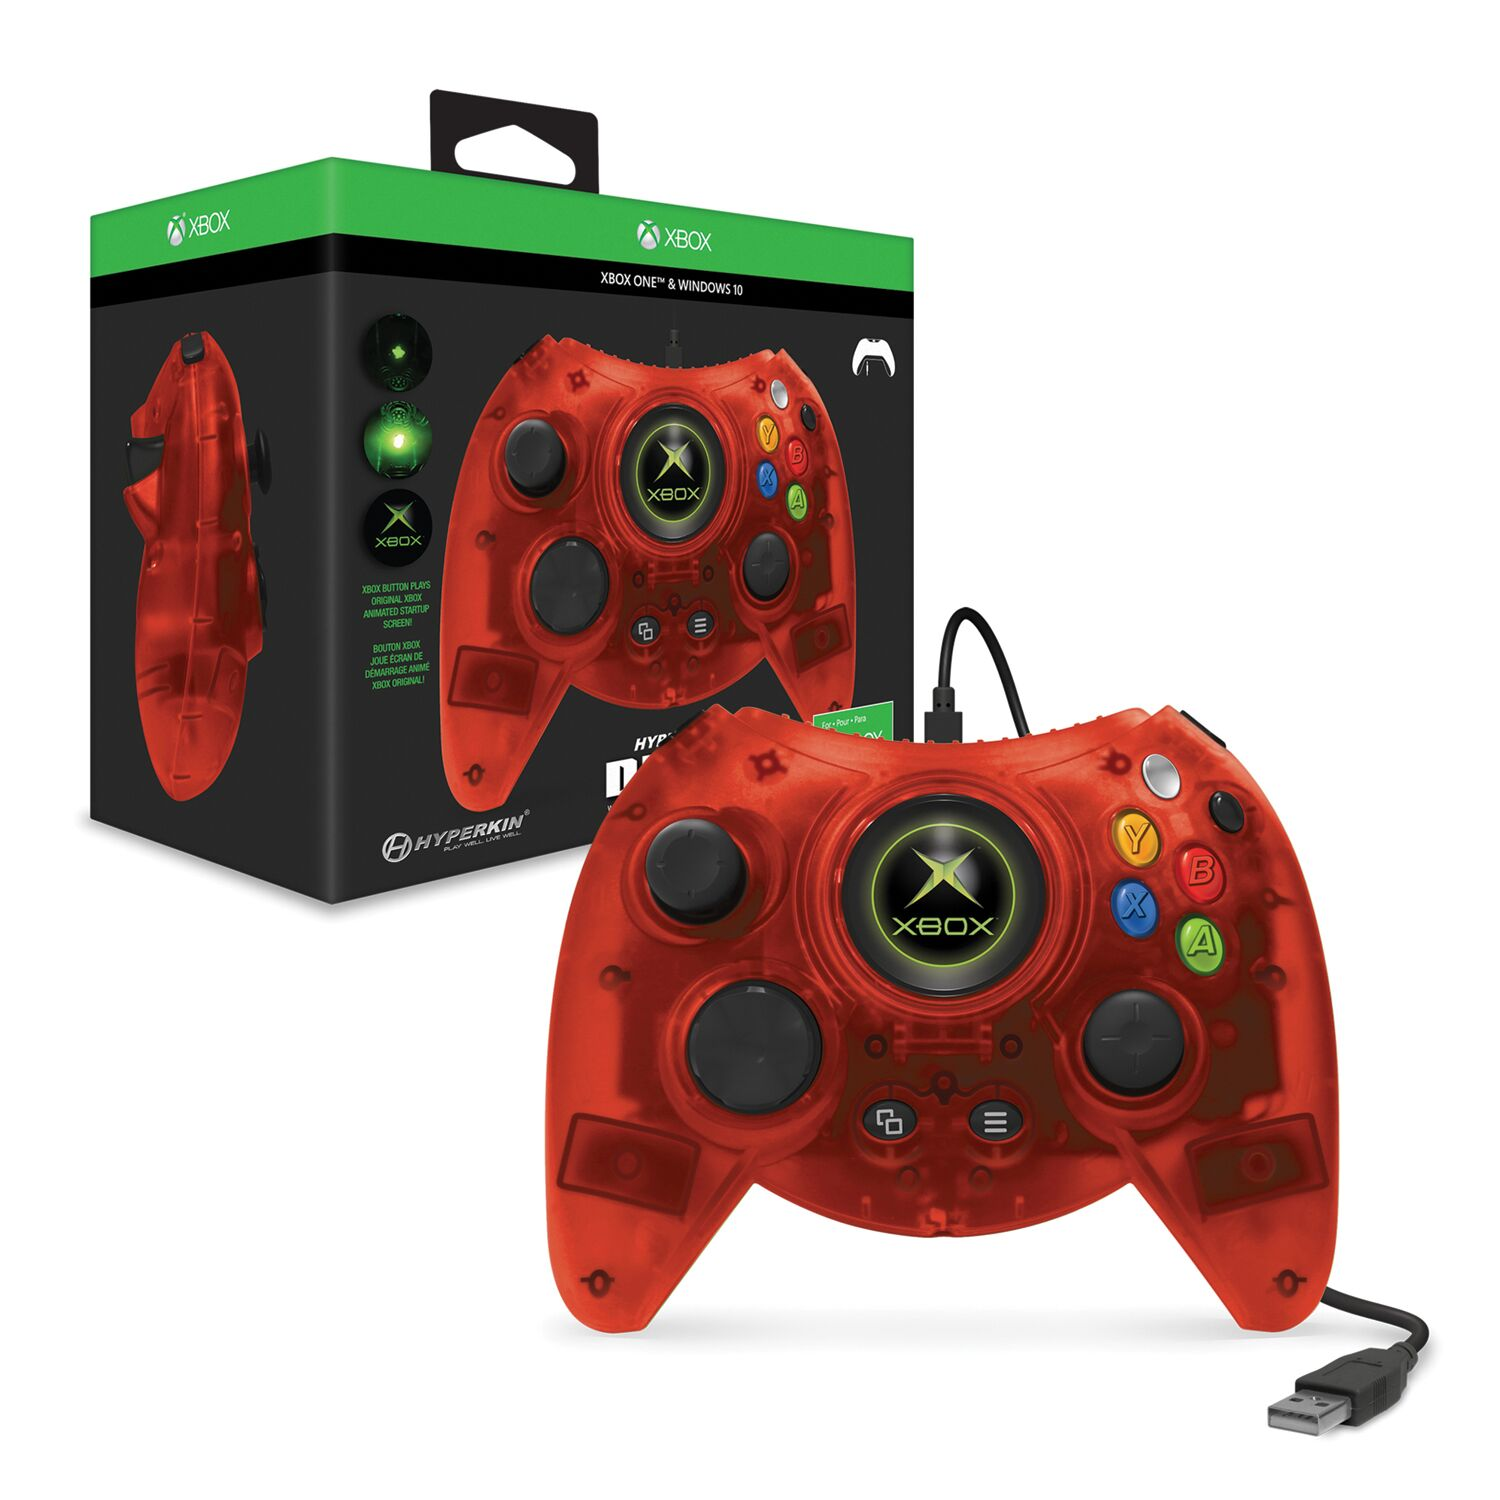 HYPERKIN M01668-RD RED DUKE WIRED CONTROLLER FOR XBOX ONE